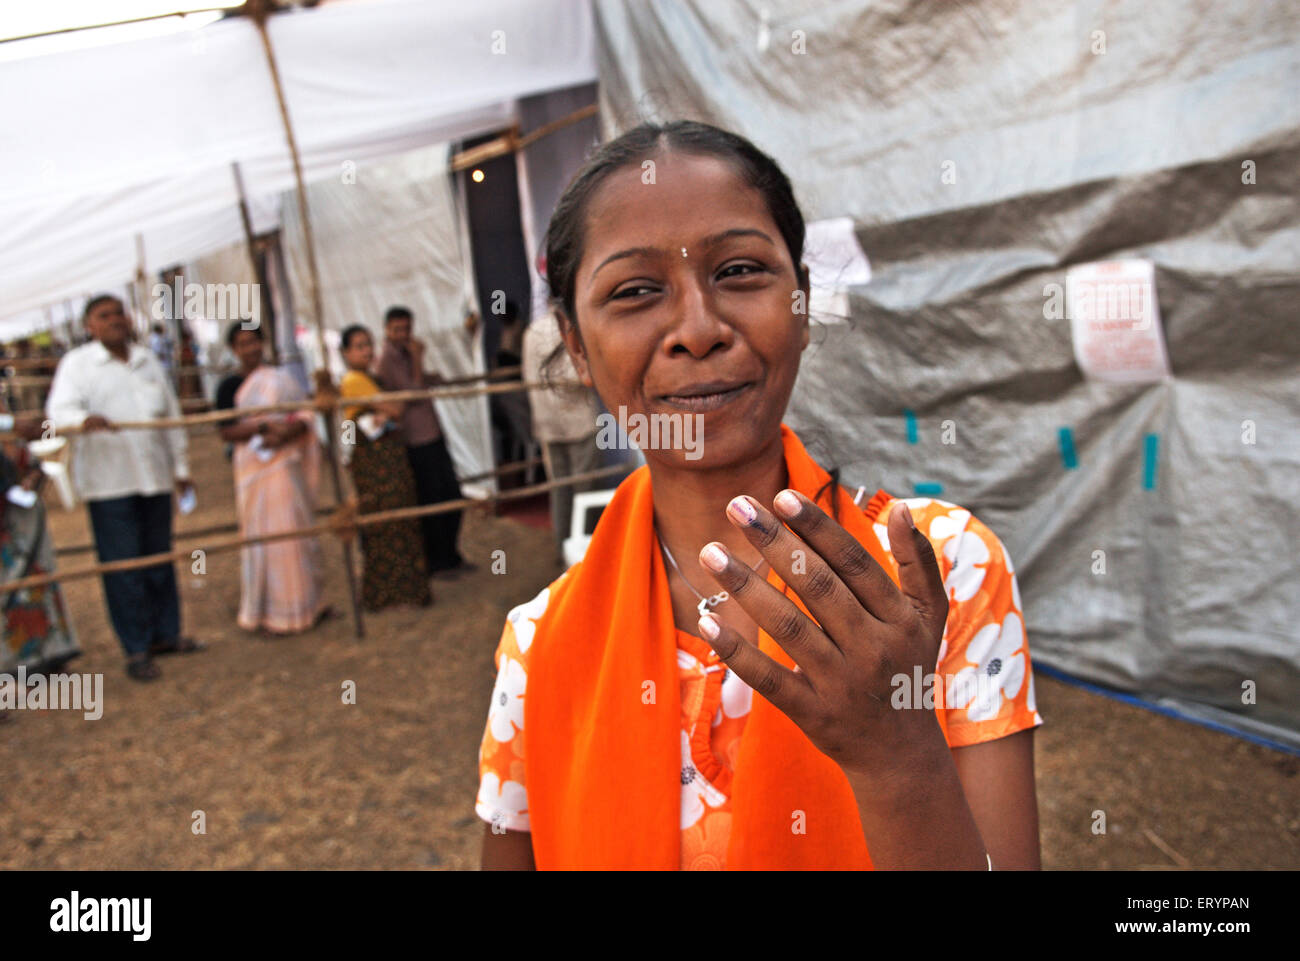 Delighted voter after casting vote in elections ; Bombay Mumbai ; Maharashtra ; India NO MR 30 April 2009 - Stock Image